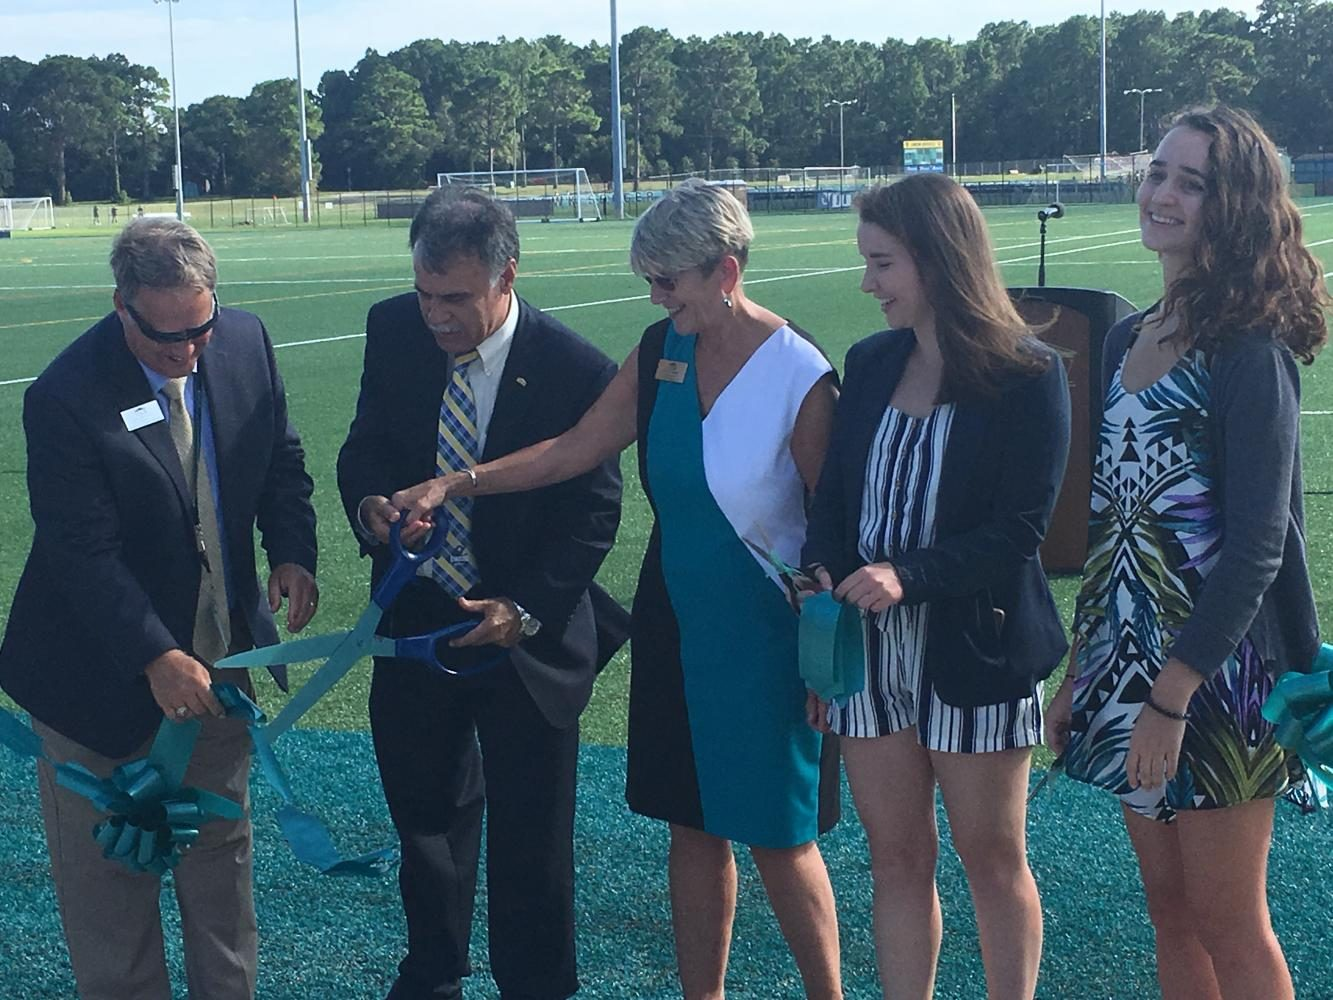 UNCW+Chancellor+Jose+V.+Sartartelli%2C+center-left%2C+cuts+the+ribbon+during+the+grand-opening+ceremony+for+the+university%27s+recreational+fields.